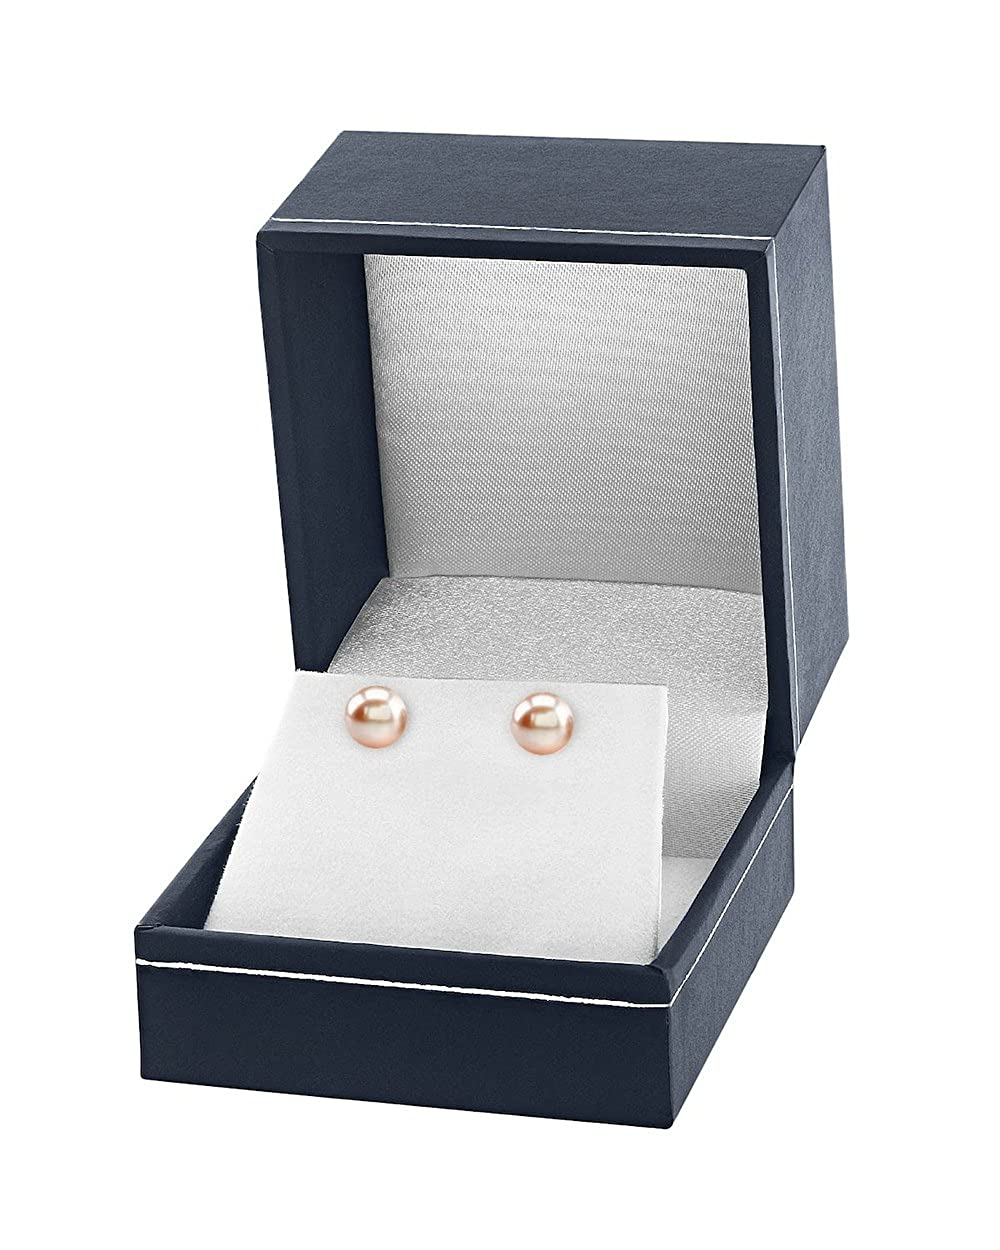 THE PEARL SOURCE 14K Gold Round Peach Freshwater Cultured Pearl Stud Earrings for Women